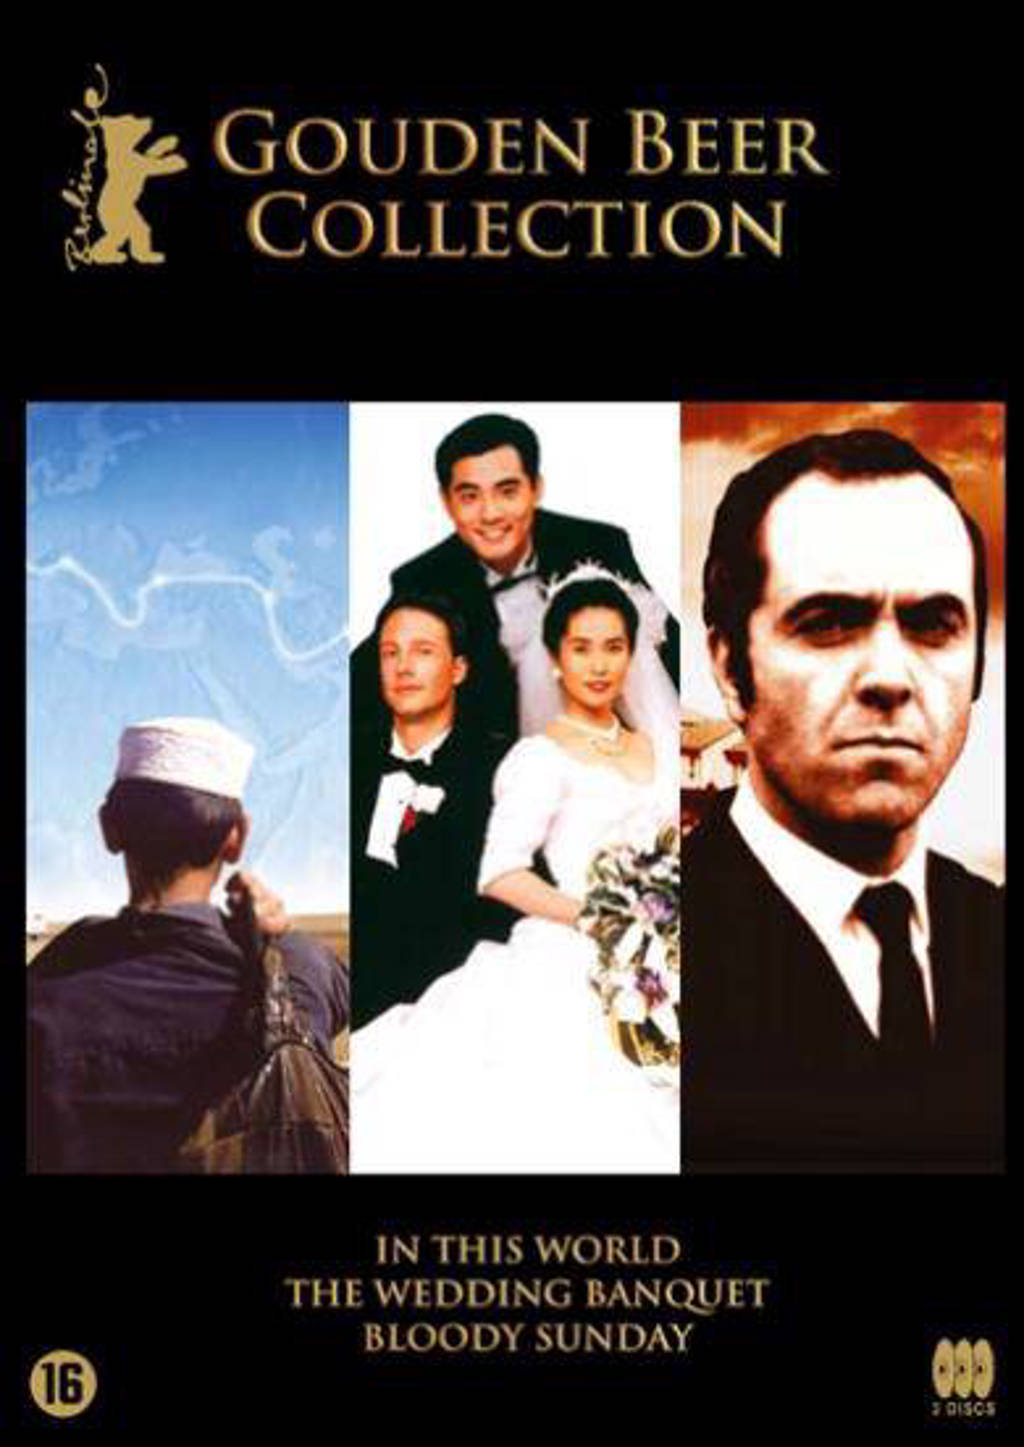 QFC box - Gouden beer collection (DVD)